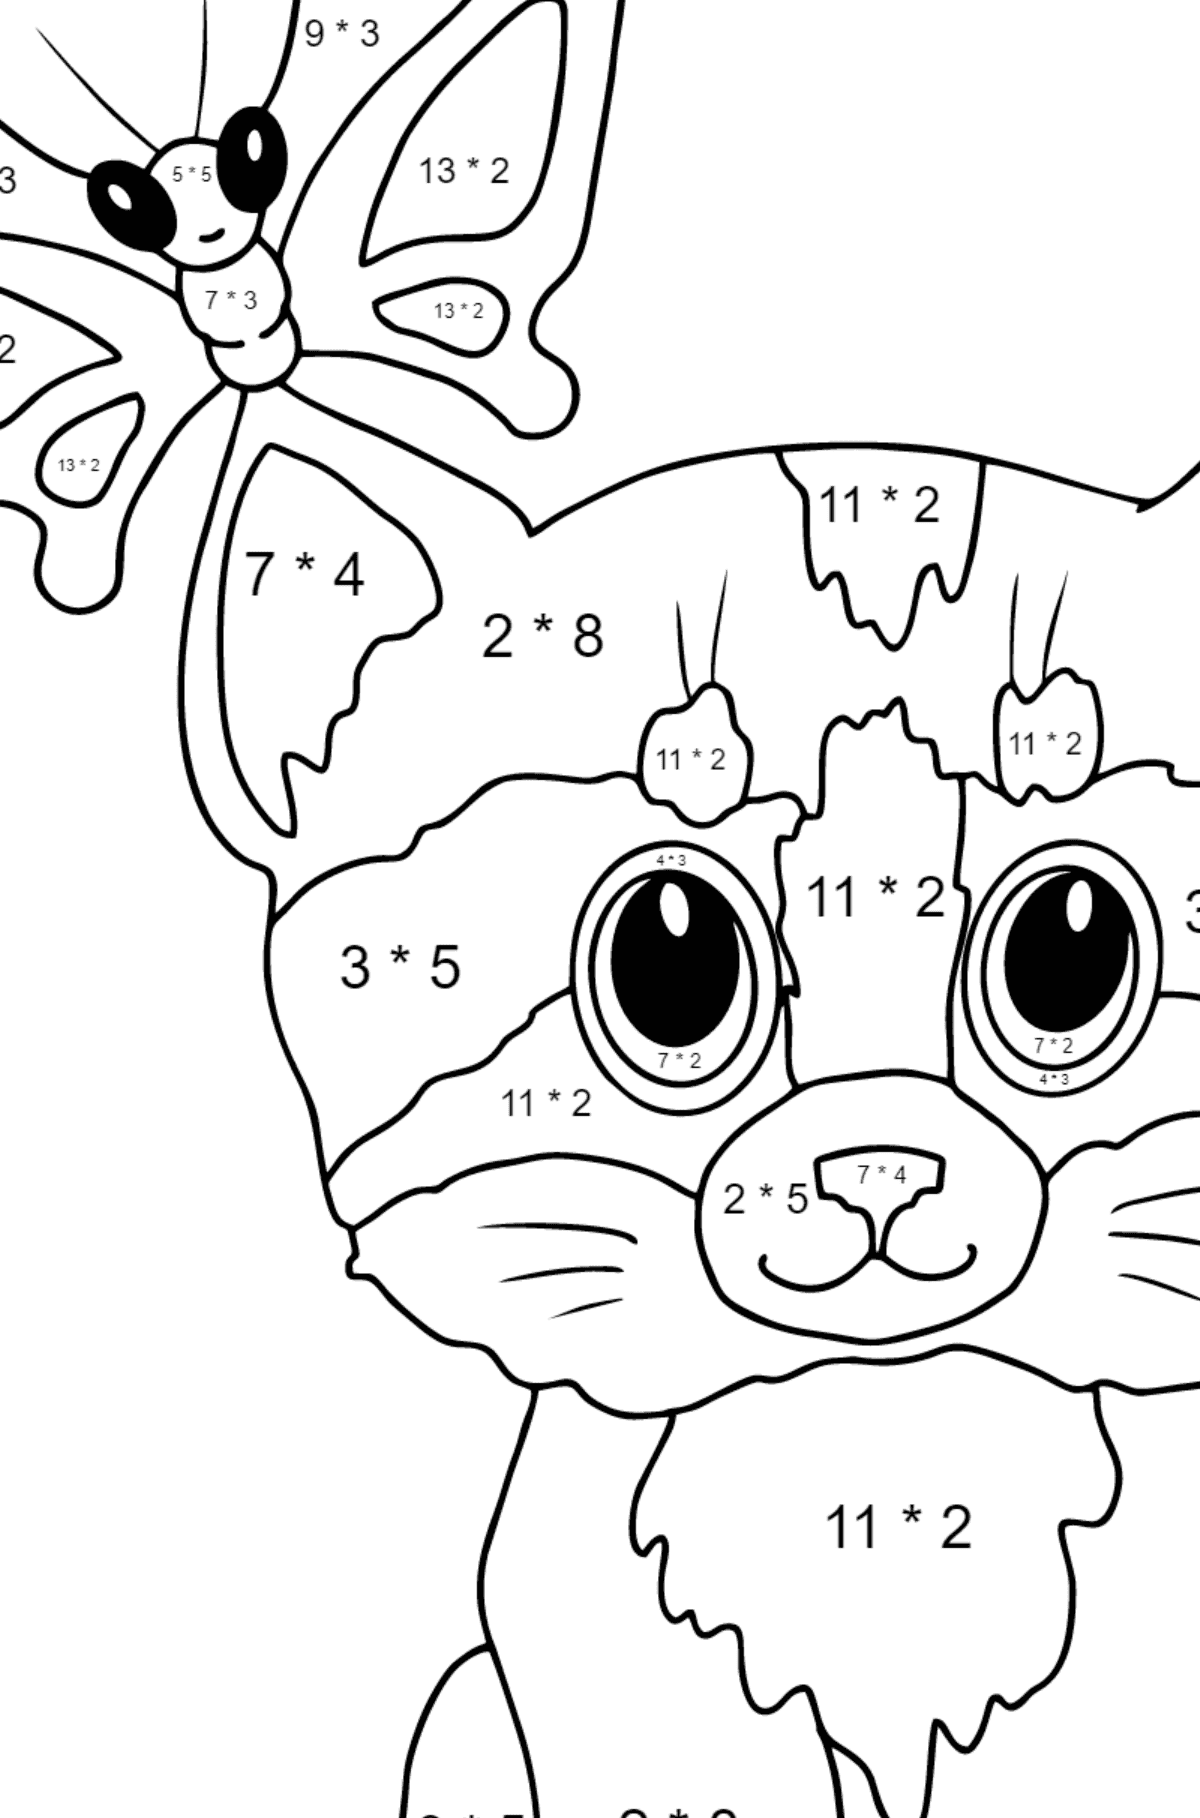 Coloring Page - A Cat with a Butterfly on Its Ear - Math Coloring - Multiplication for Children